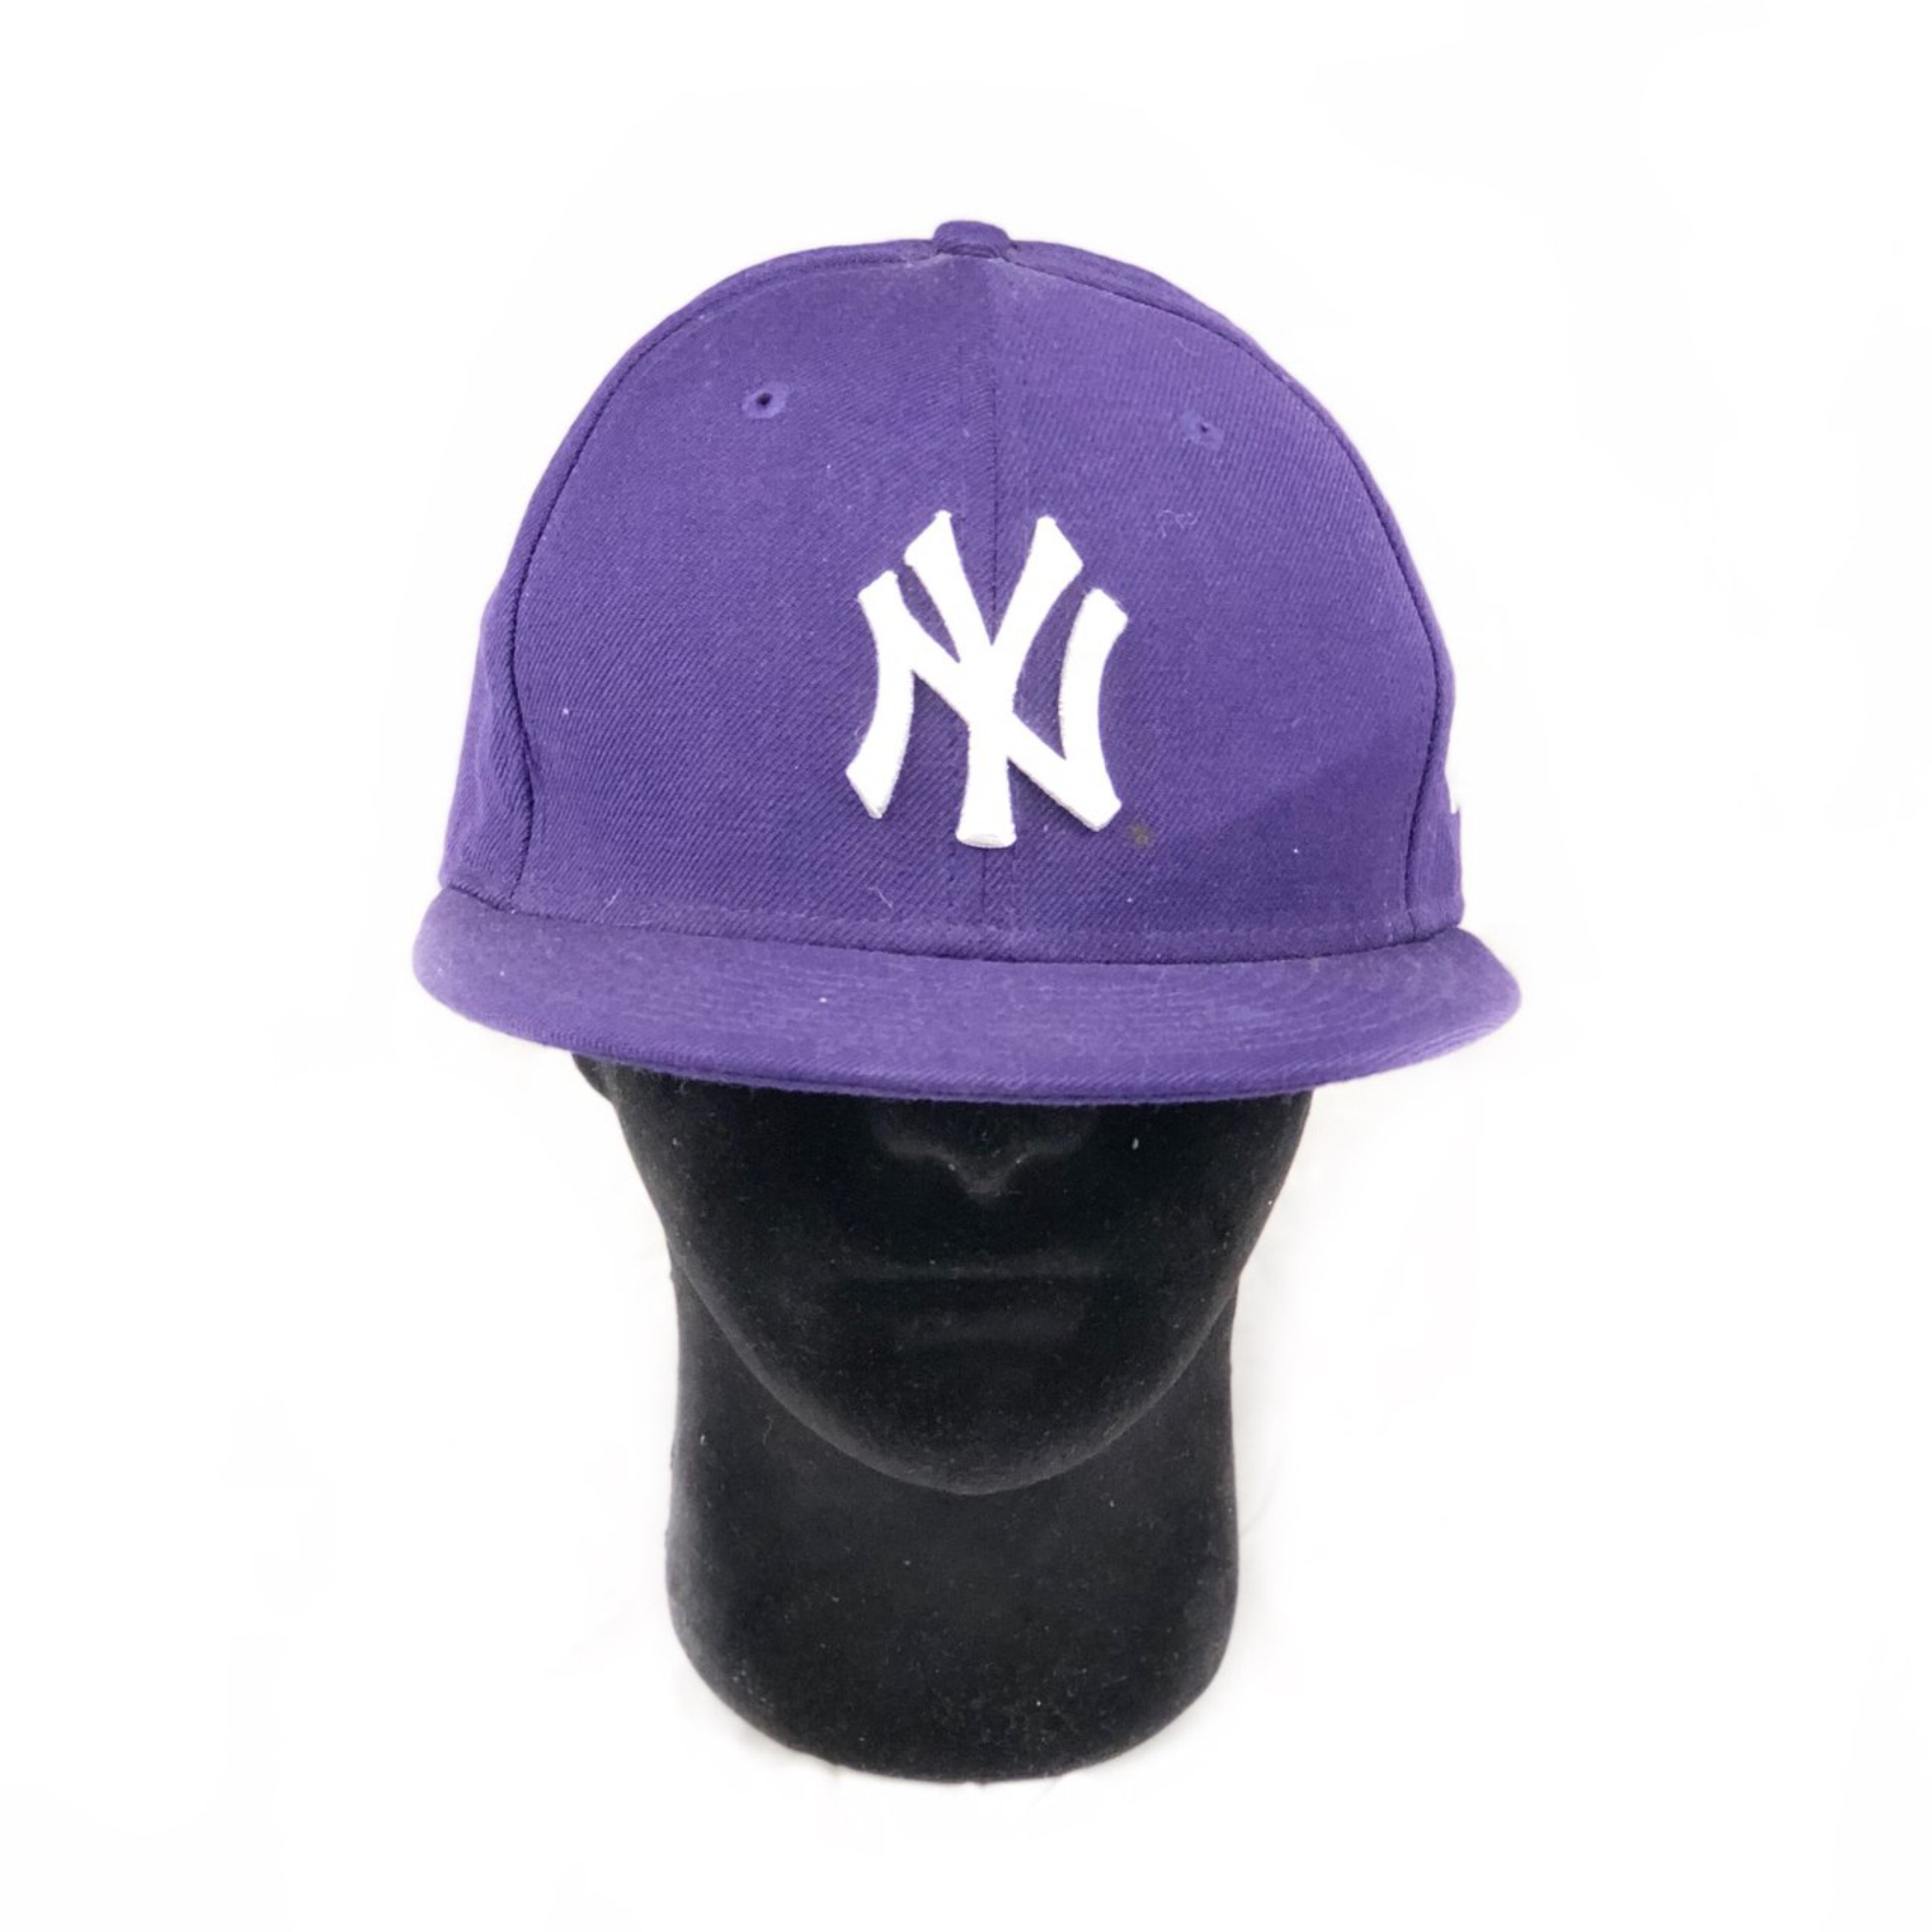 New York Yankees New Era Fitted Hat